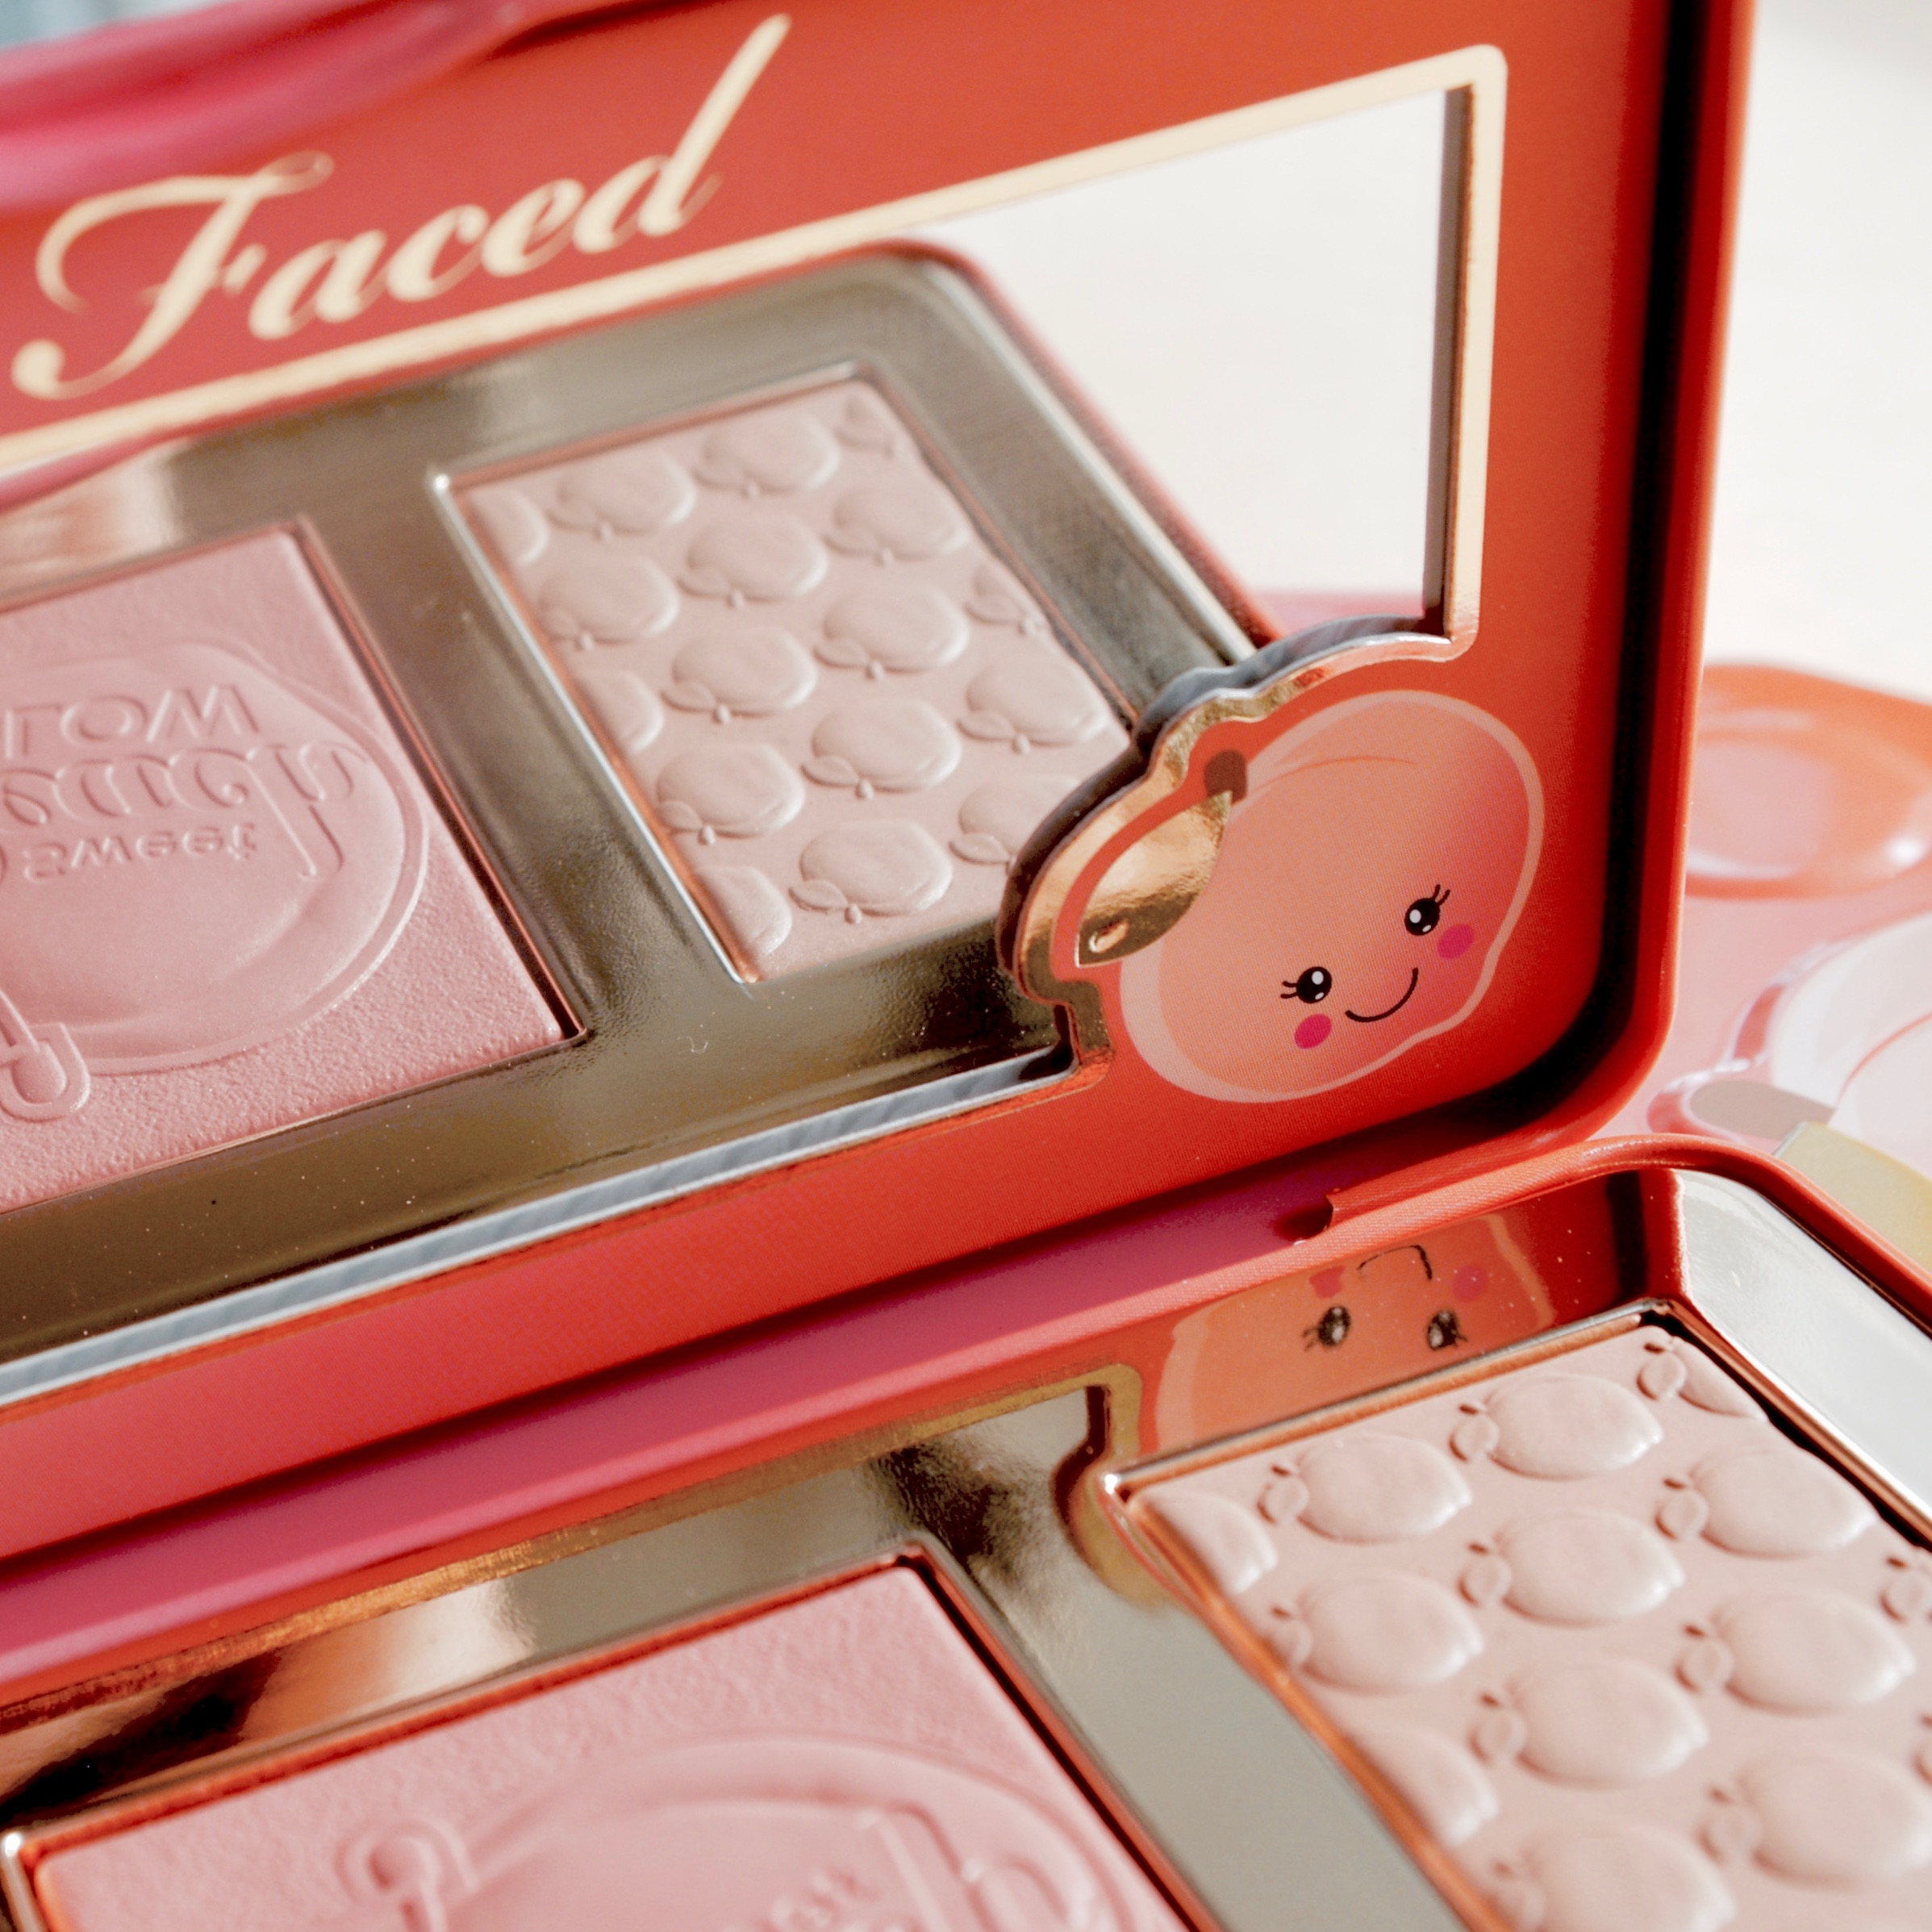 Friday Faves - Too Faced Sweet Peach Glow highlighting palette